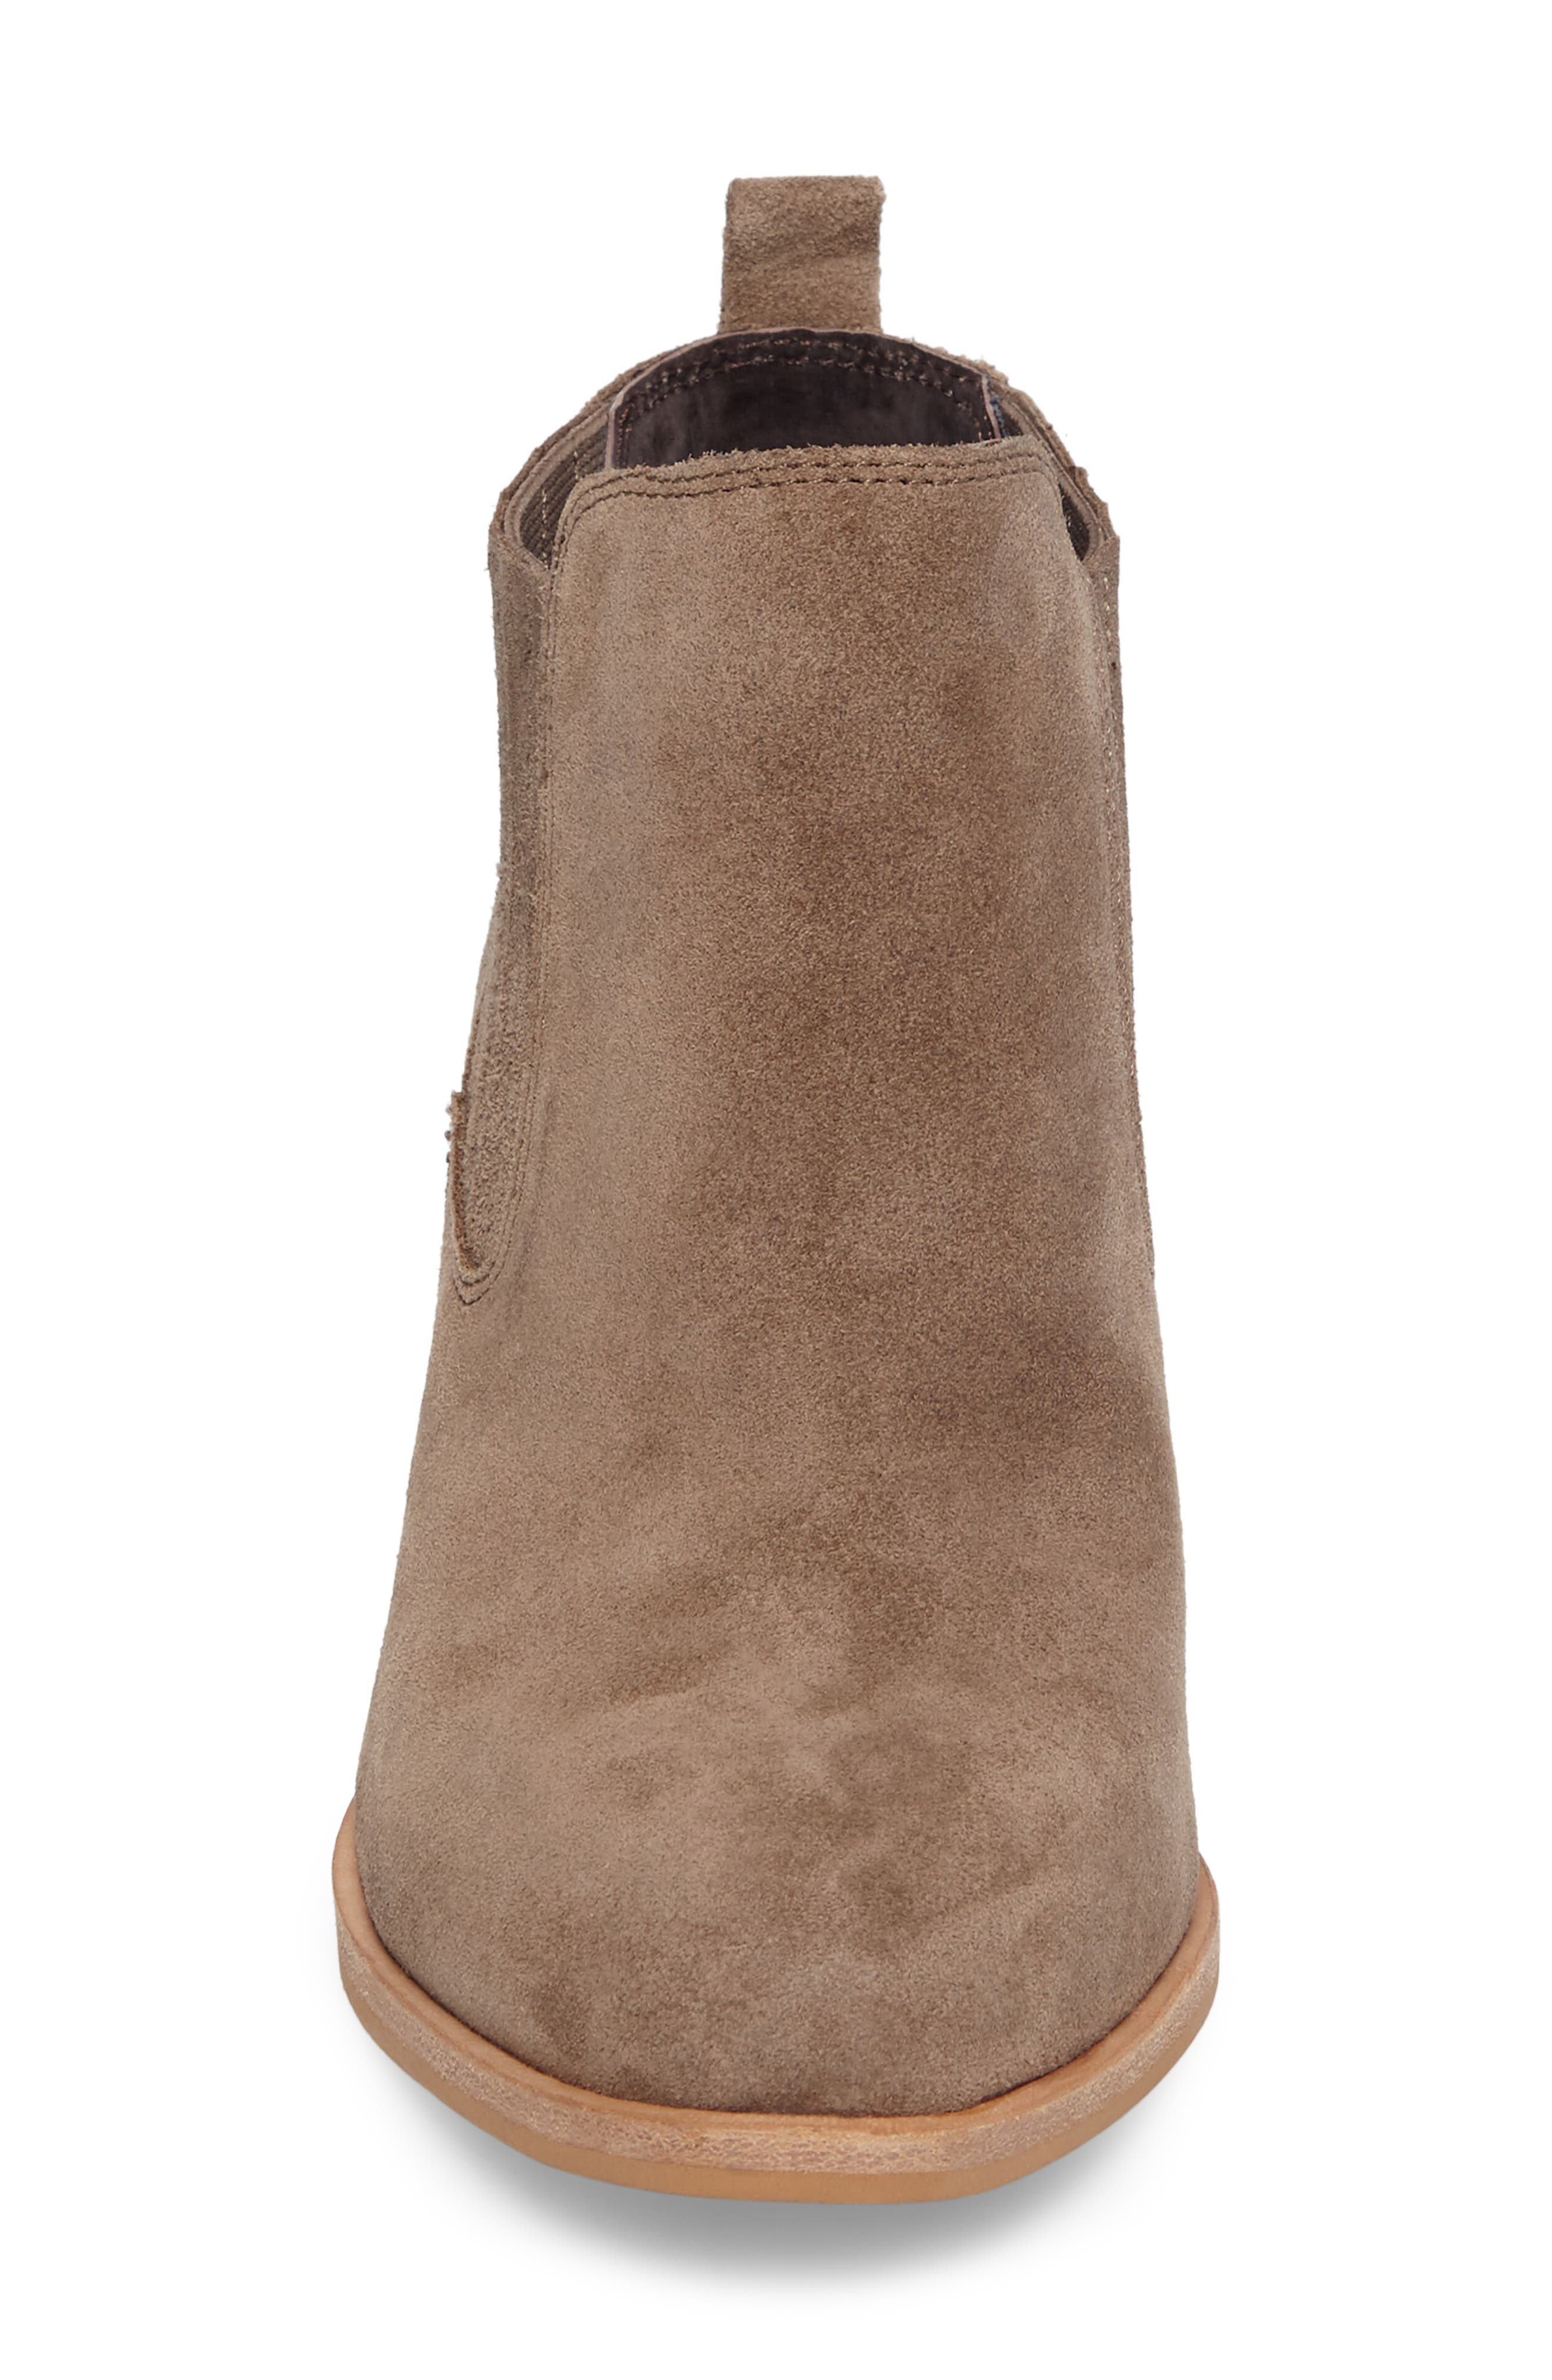 Olicia Gored Bootie,                             Alternate thumbnail 4, color,                             MARMOTTA LIGHT GREY SUEDE